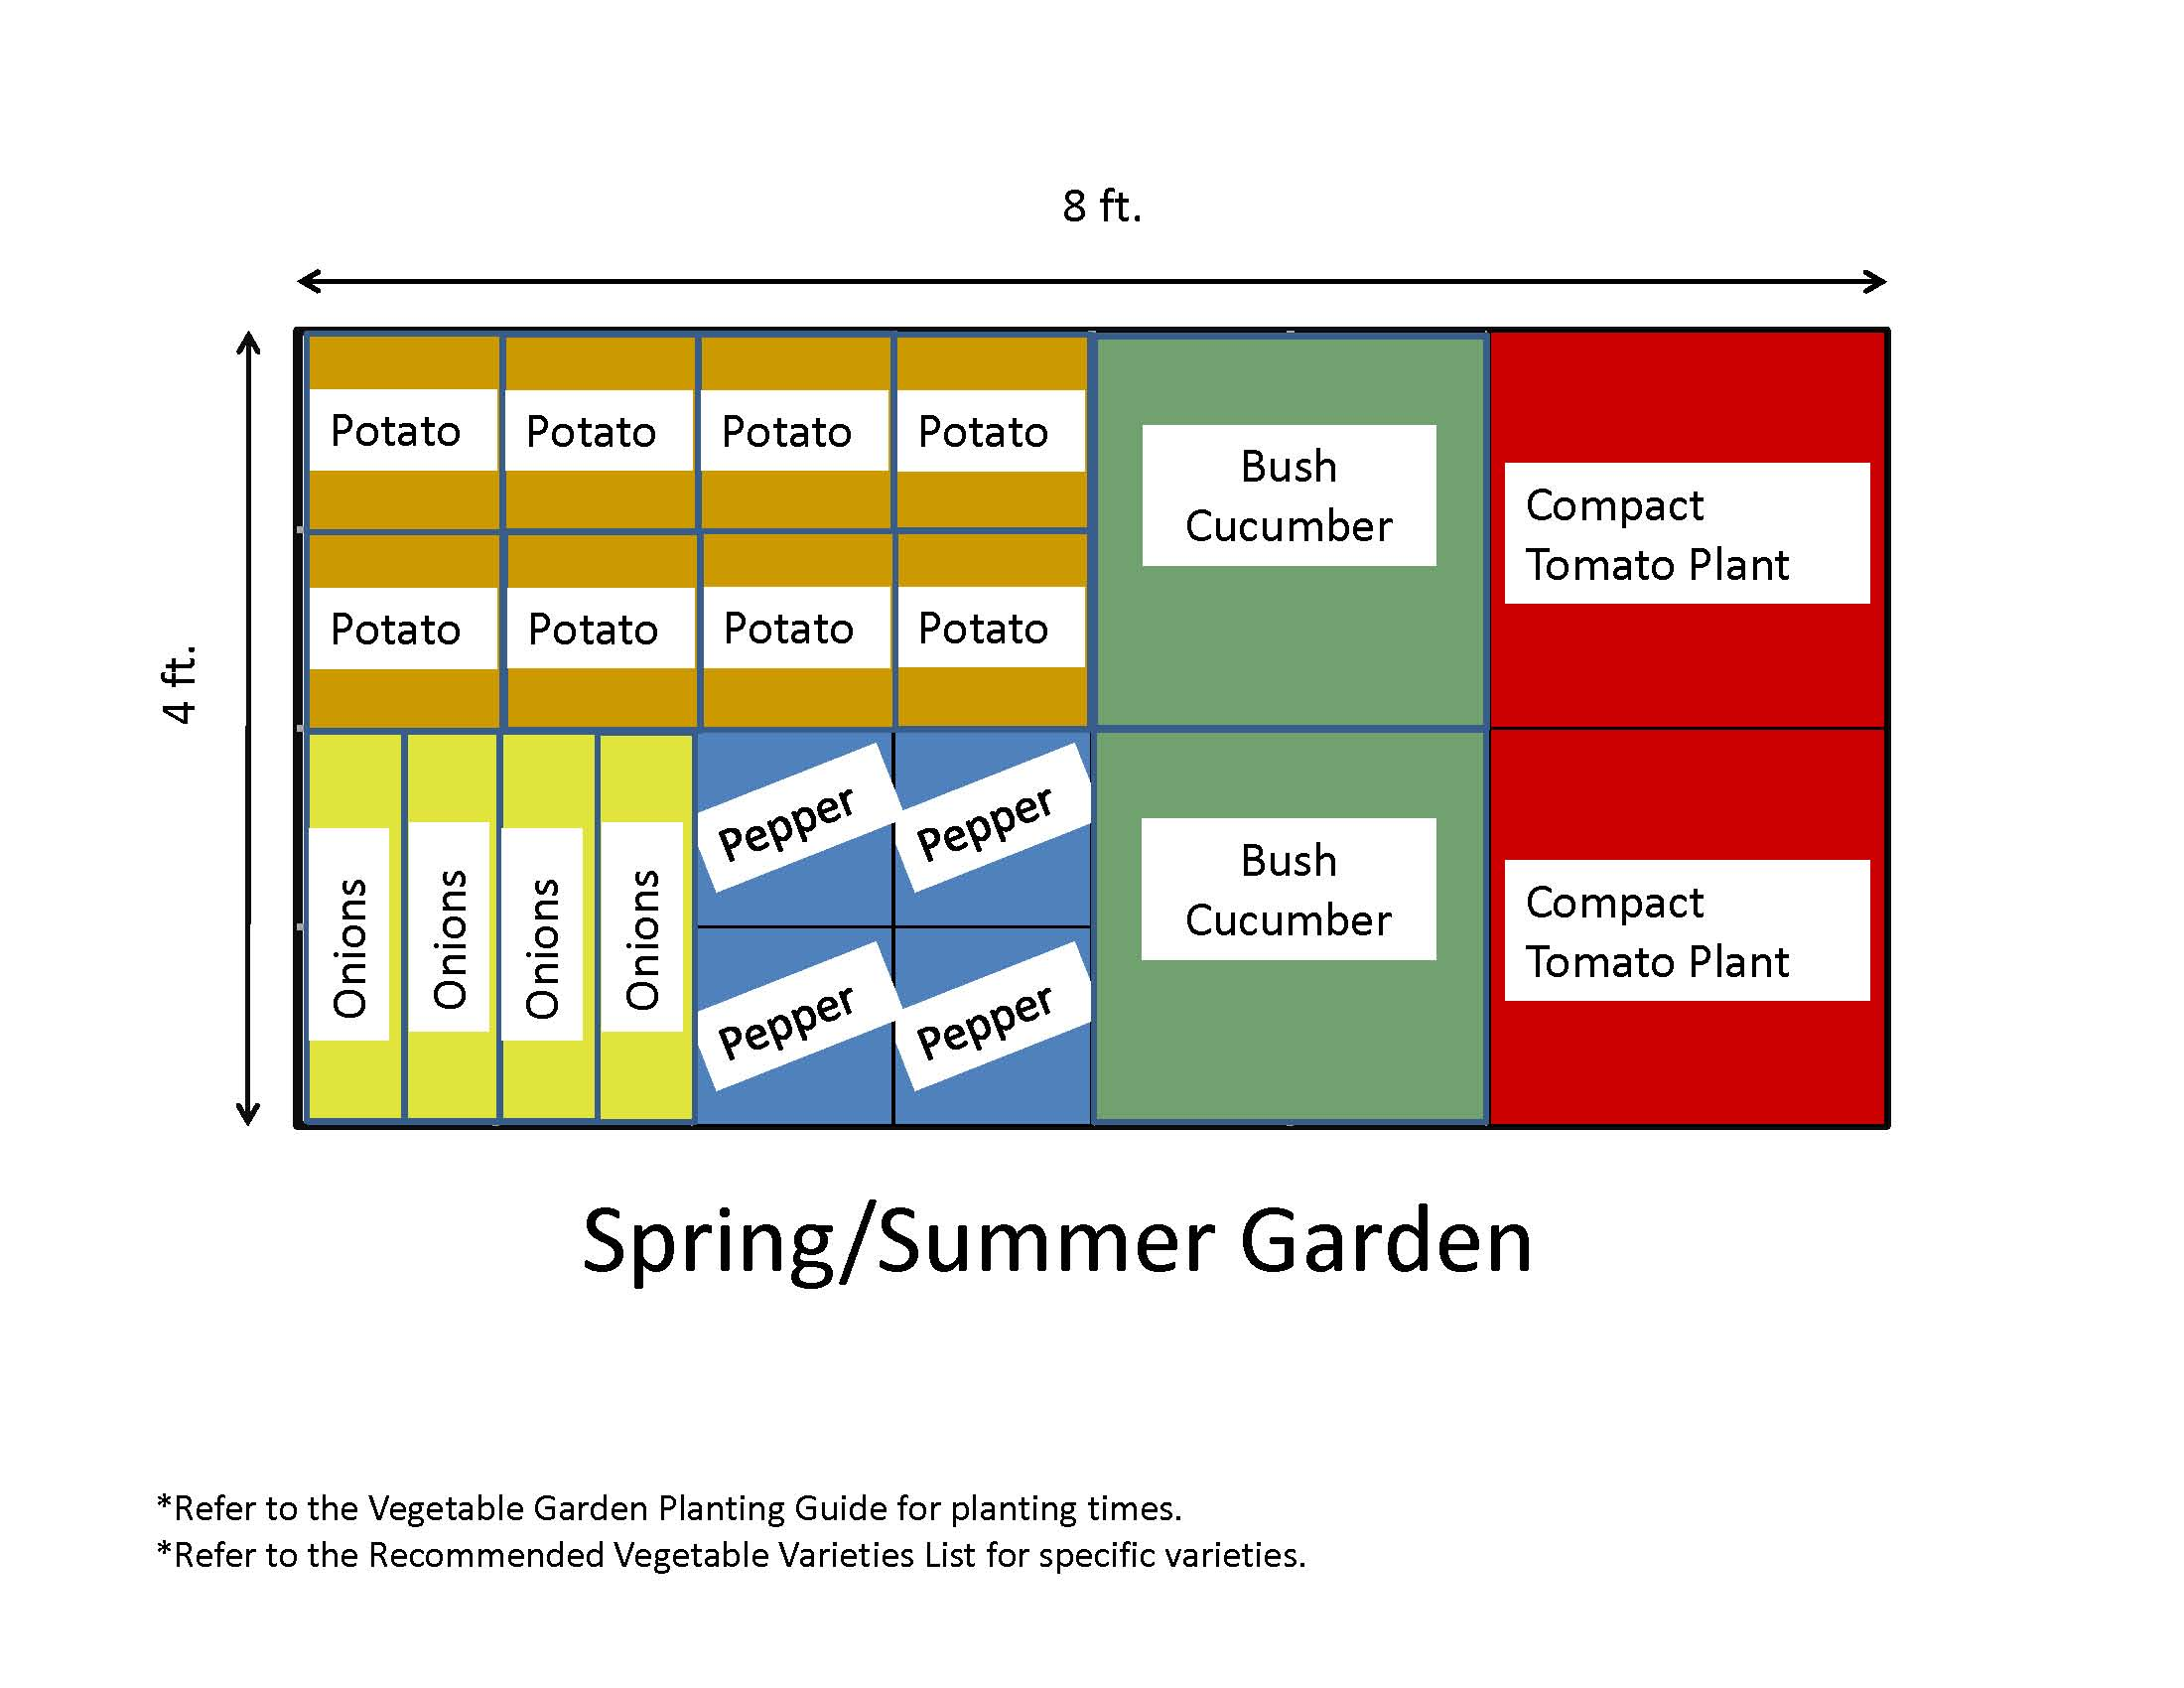 Garden Templates | The Demo Garden Blog on color garden design, white garden design, edge garden design, butterfly garden design, tree garden design, key garden design, purple garden design, crescent garden design, hexagonal garden design, matrix garden design, l shaped garden design, teardrop garden design, corner garden design, classic garden design, circle garden design, pyramid garden design, barrel garden design, oval garden design, triangular garden design, octagon garden design,